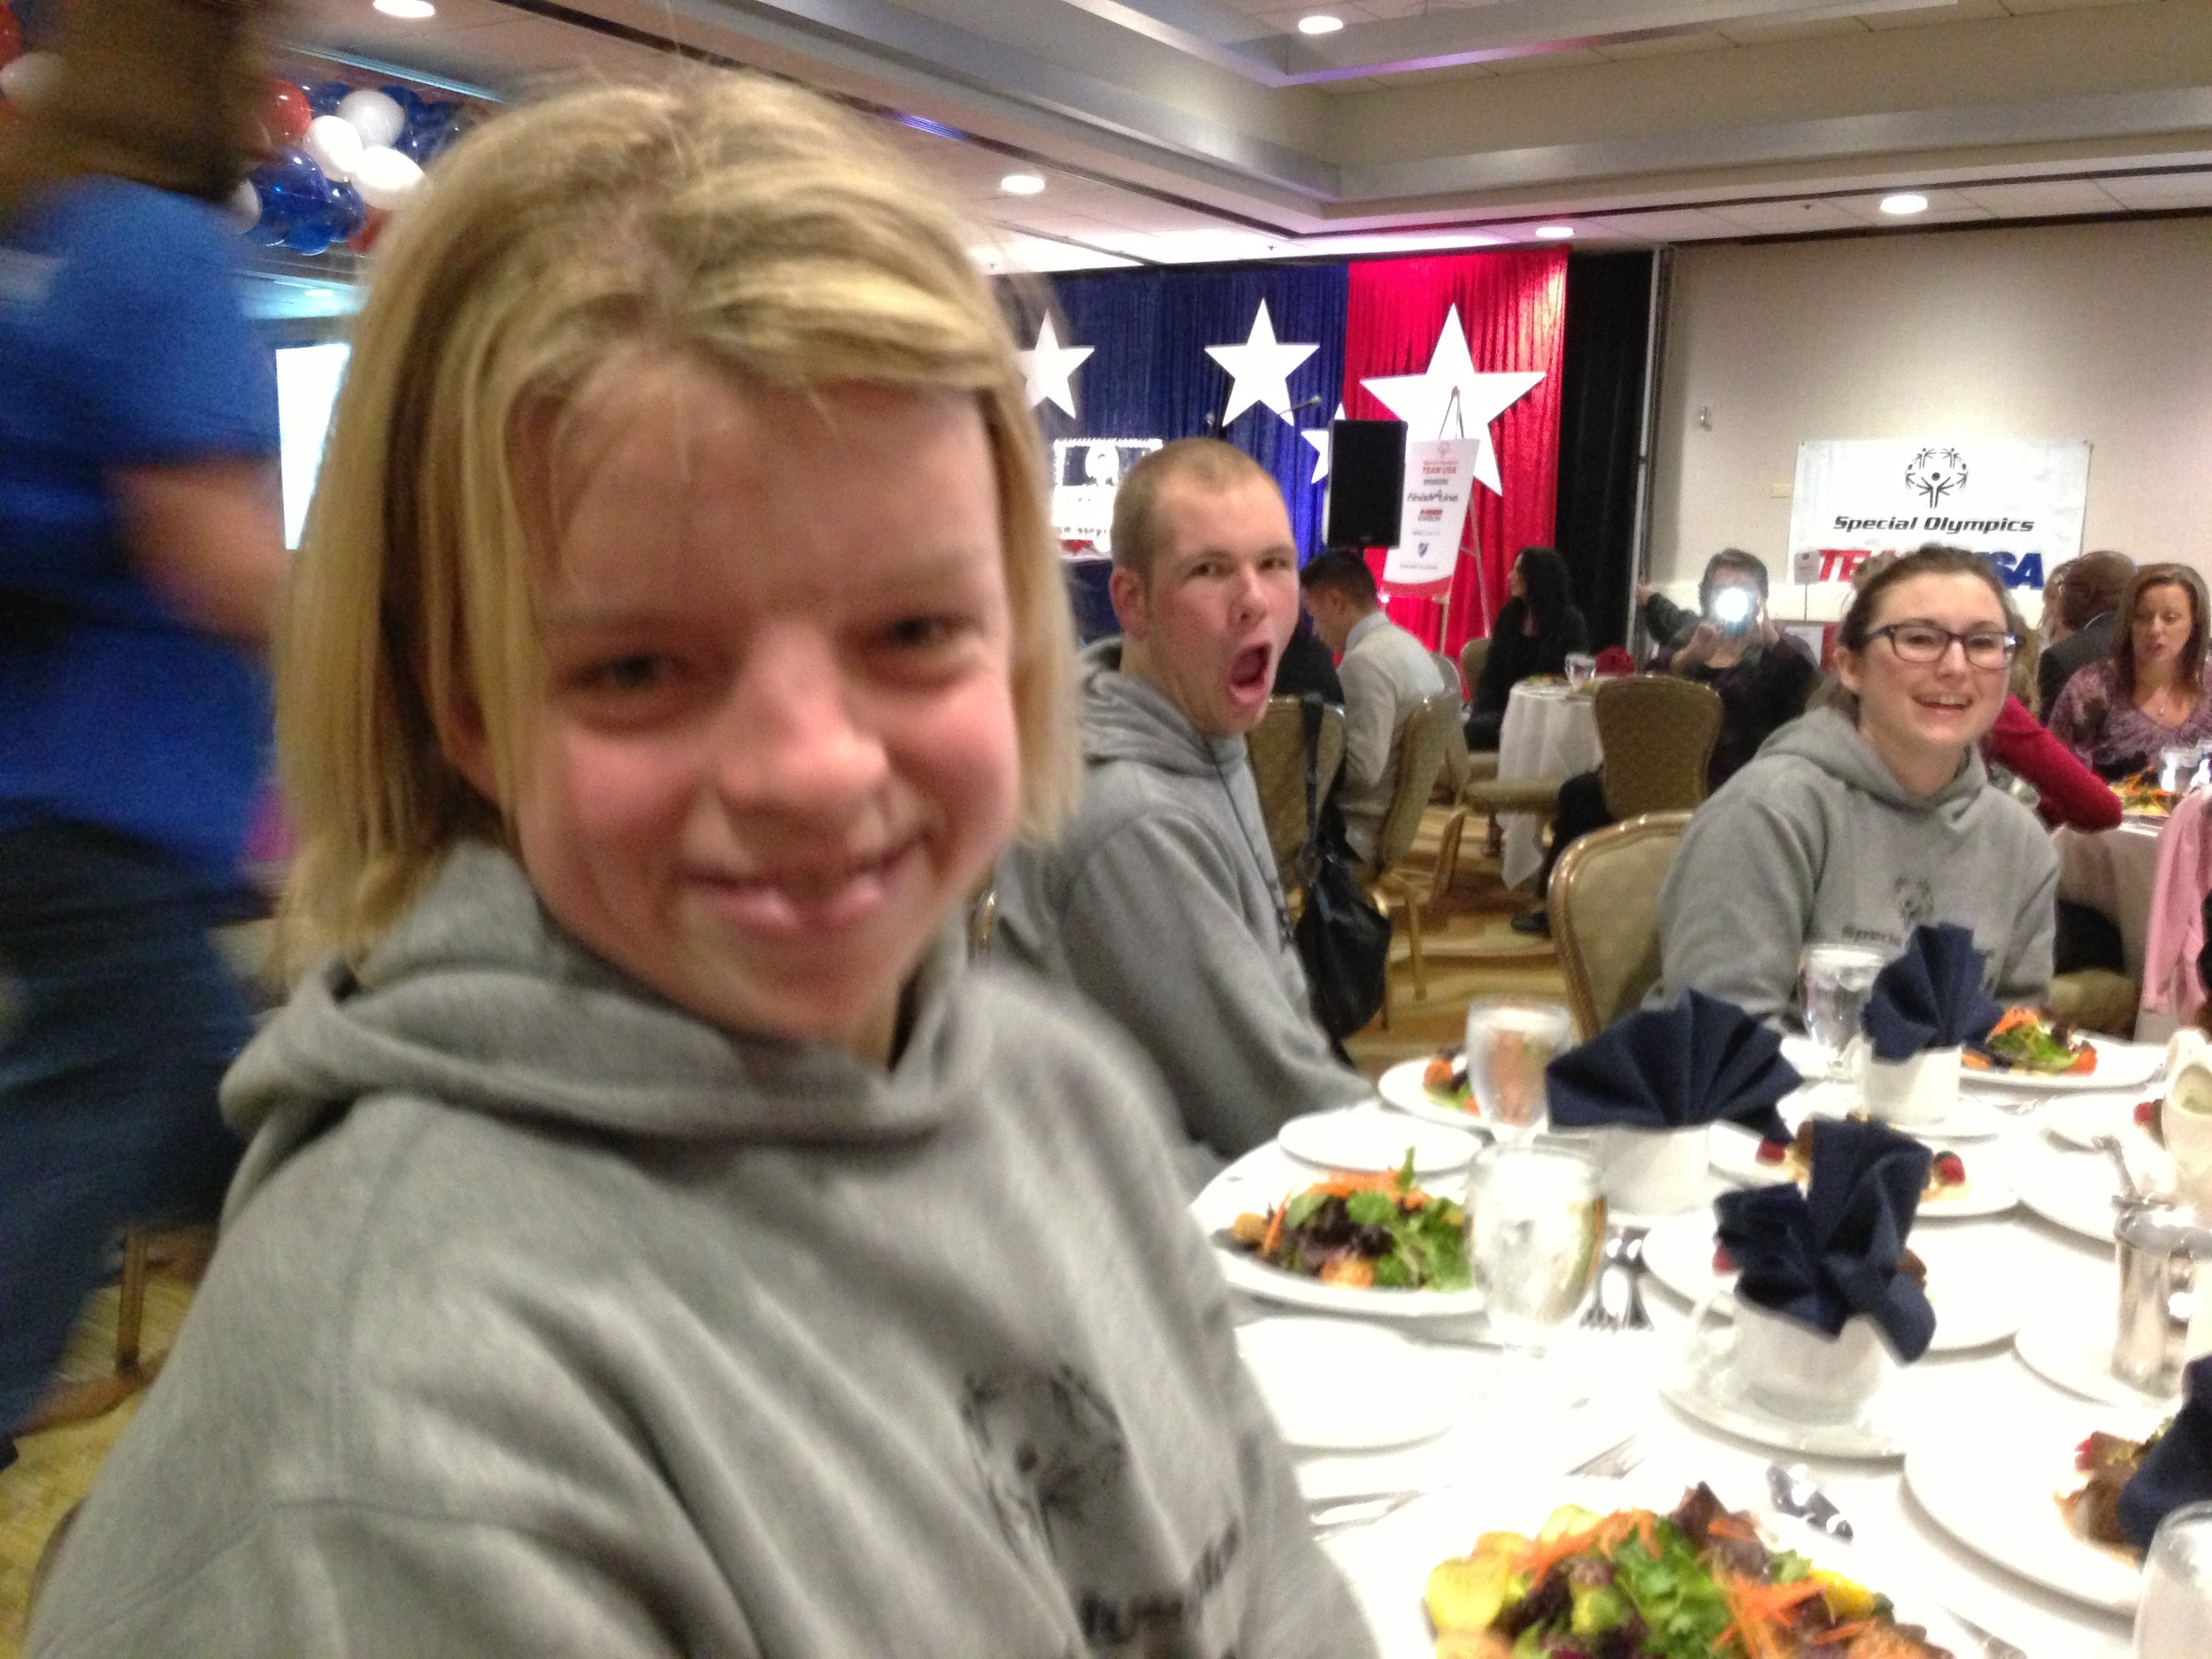 Daina Shilts, 22, of Neillsville, Wis., Special Olympics snowboarder